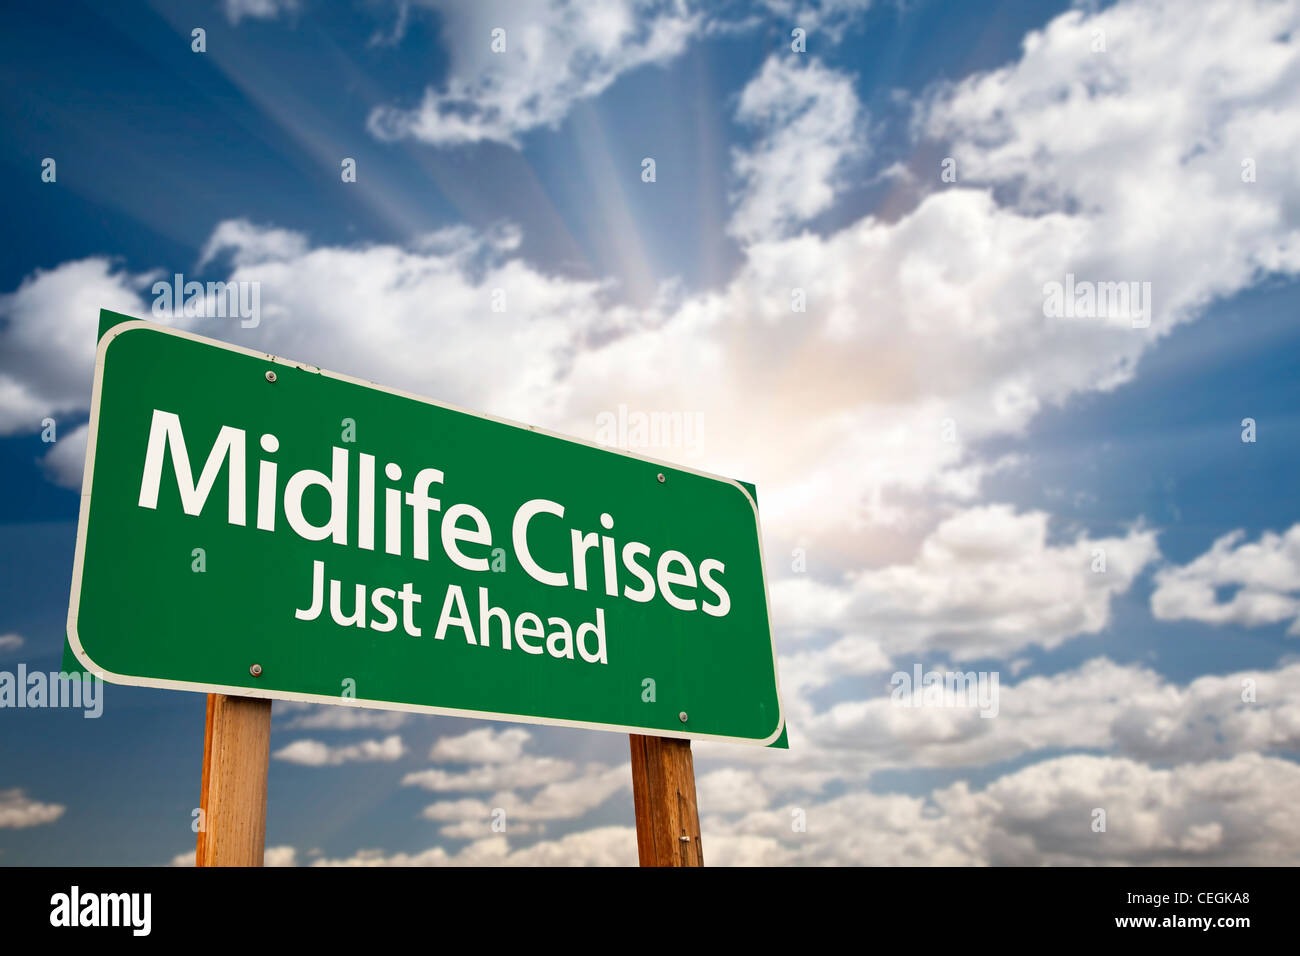 Midlife Crises Just Ahead Green Road Sign with Dramatic Clouds, Sun Rays and Sky. - Stock Image